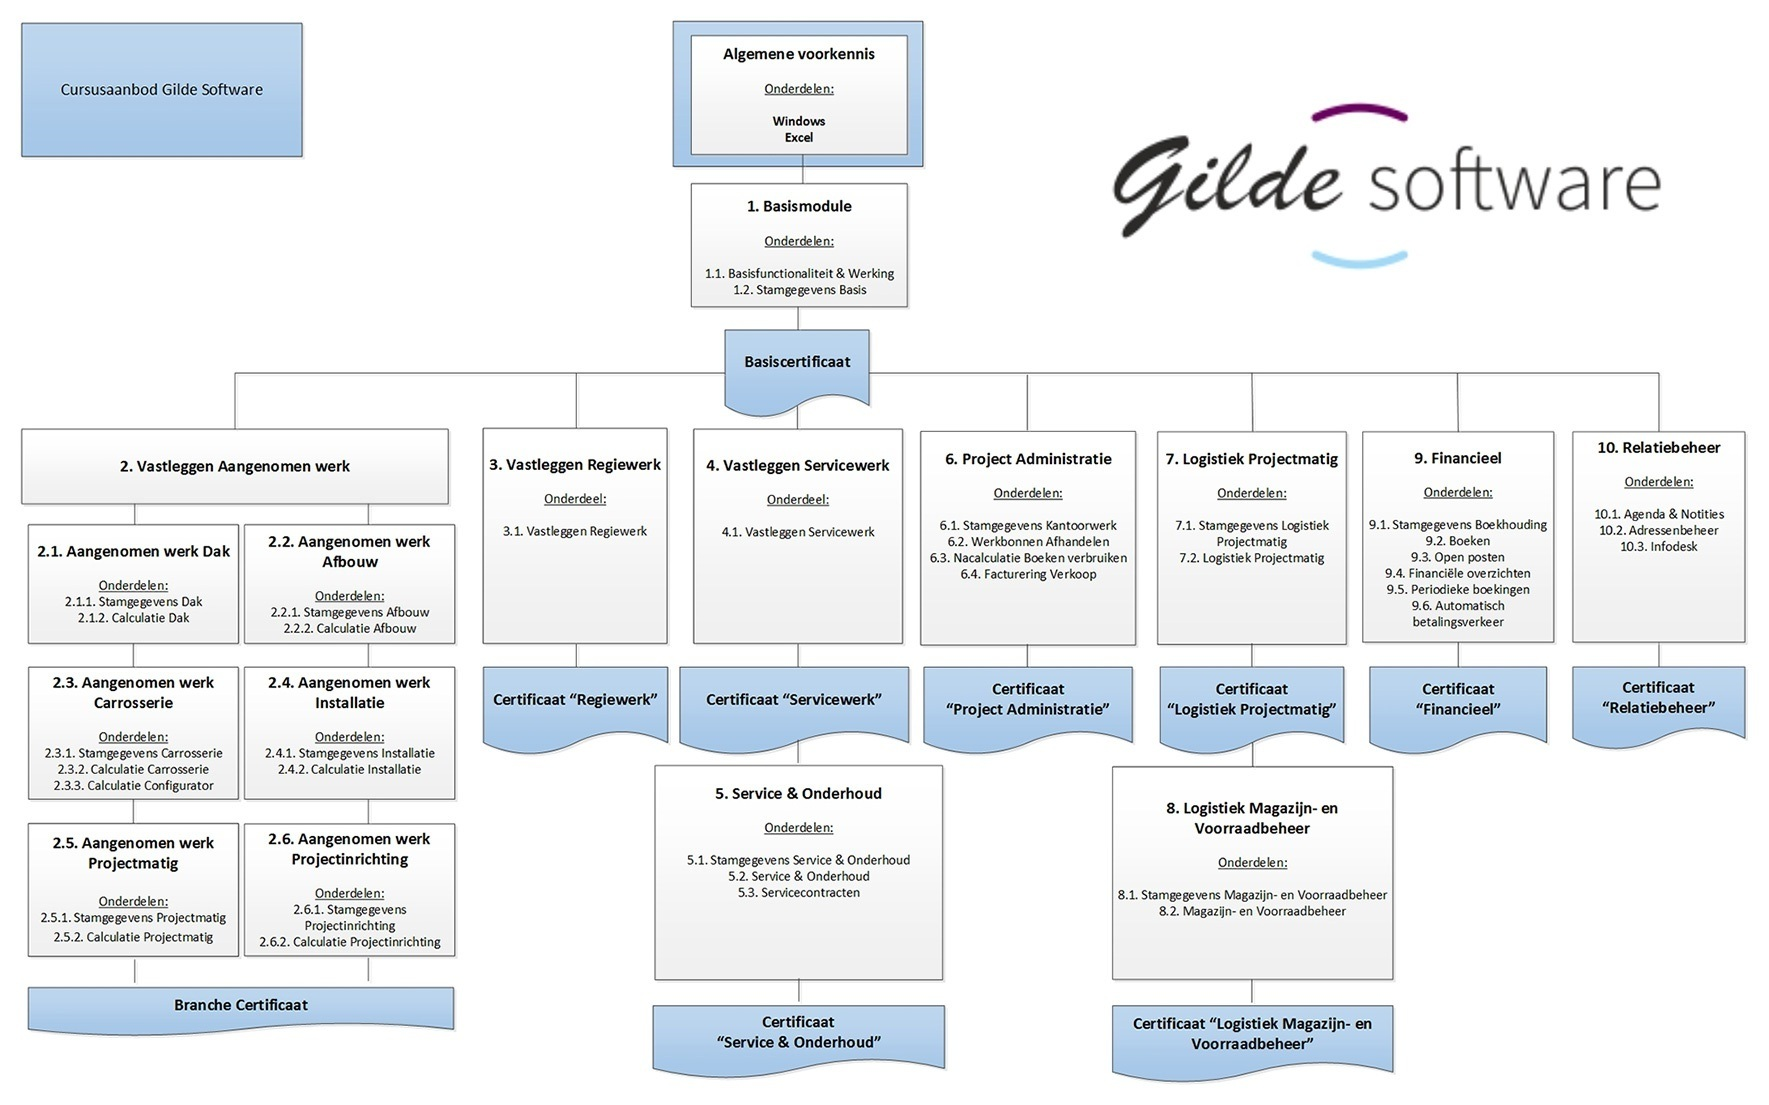 Cursusaanbod - Gilde Software